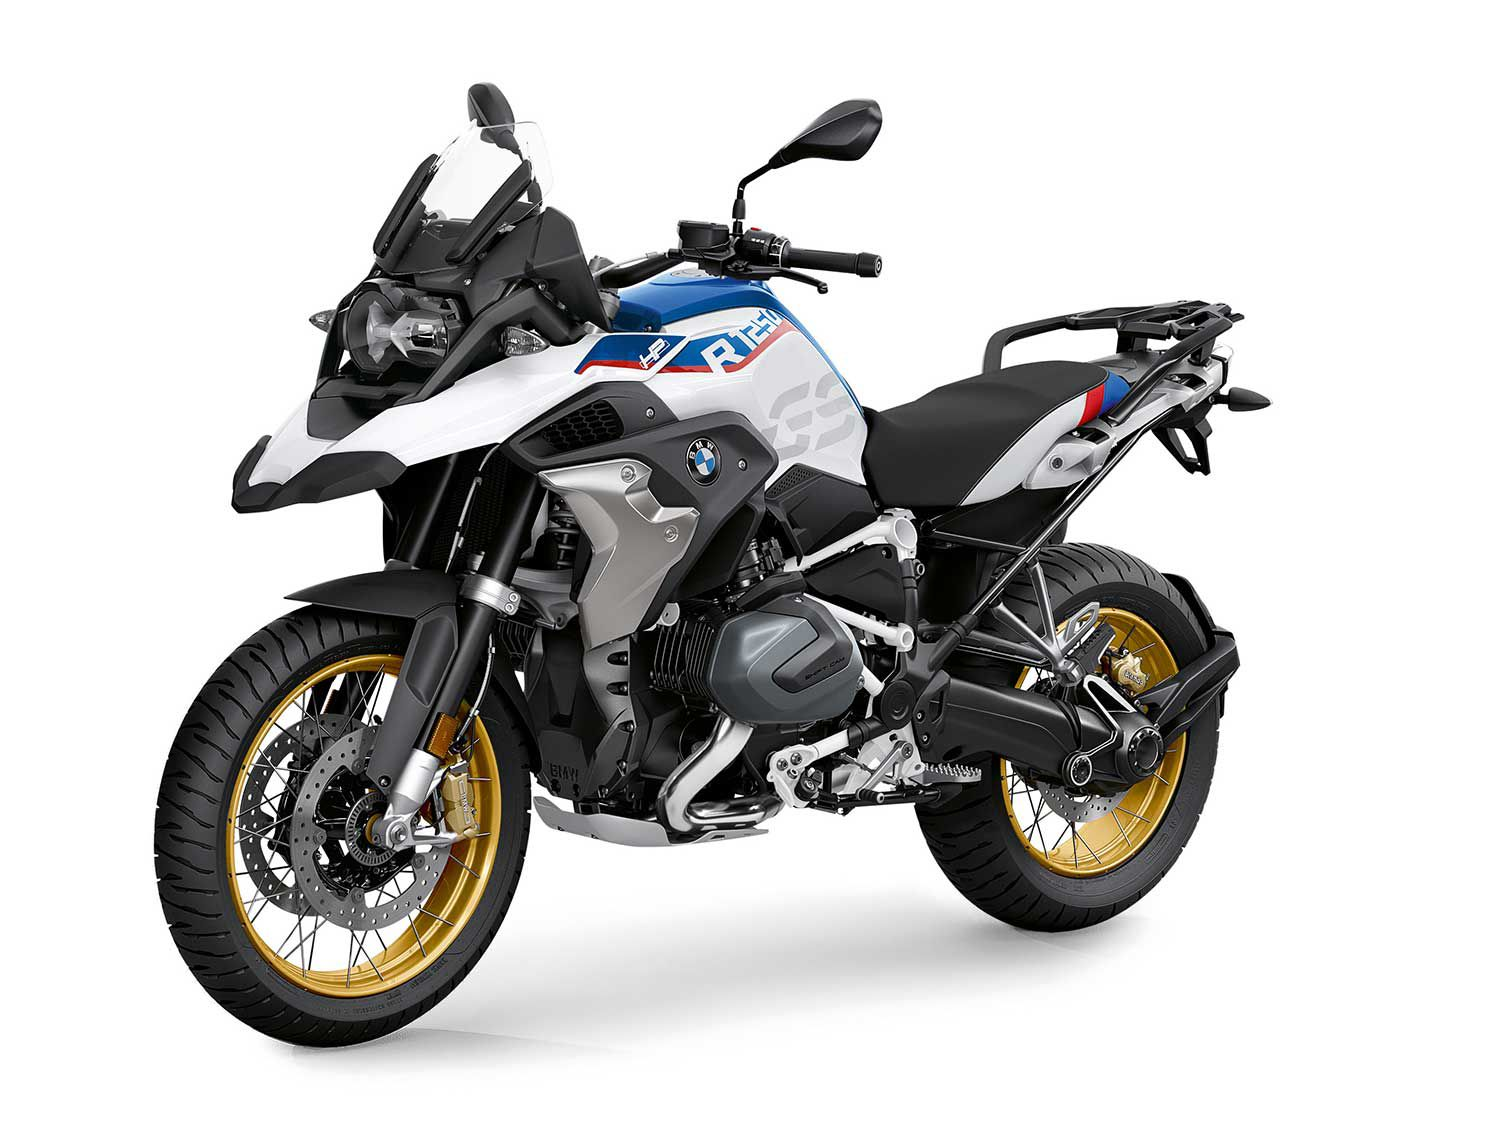 The R 1250 GS is a great commuter despite its size.